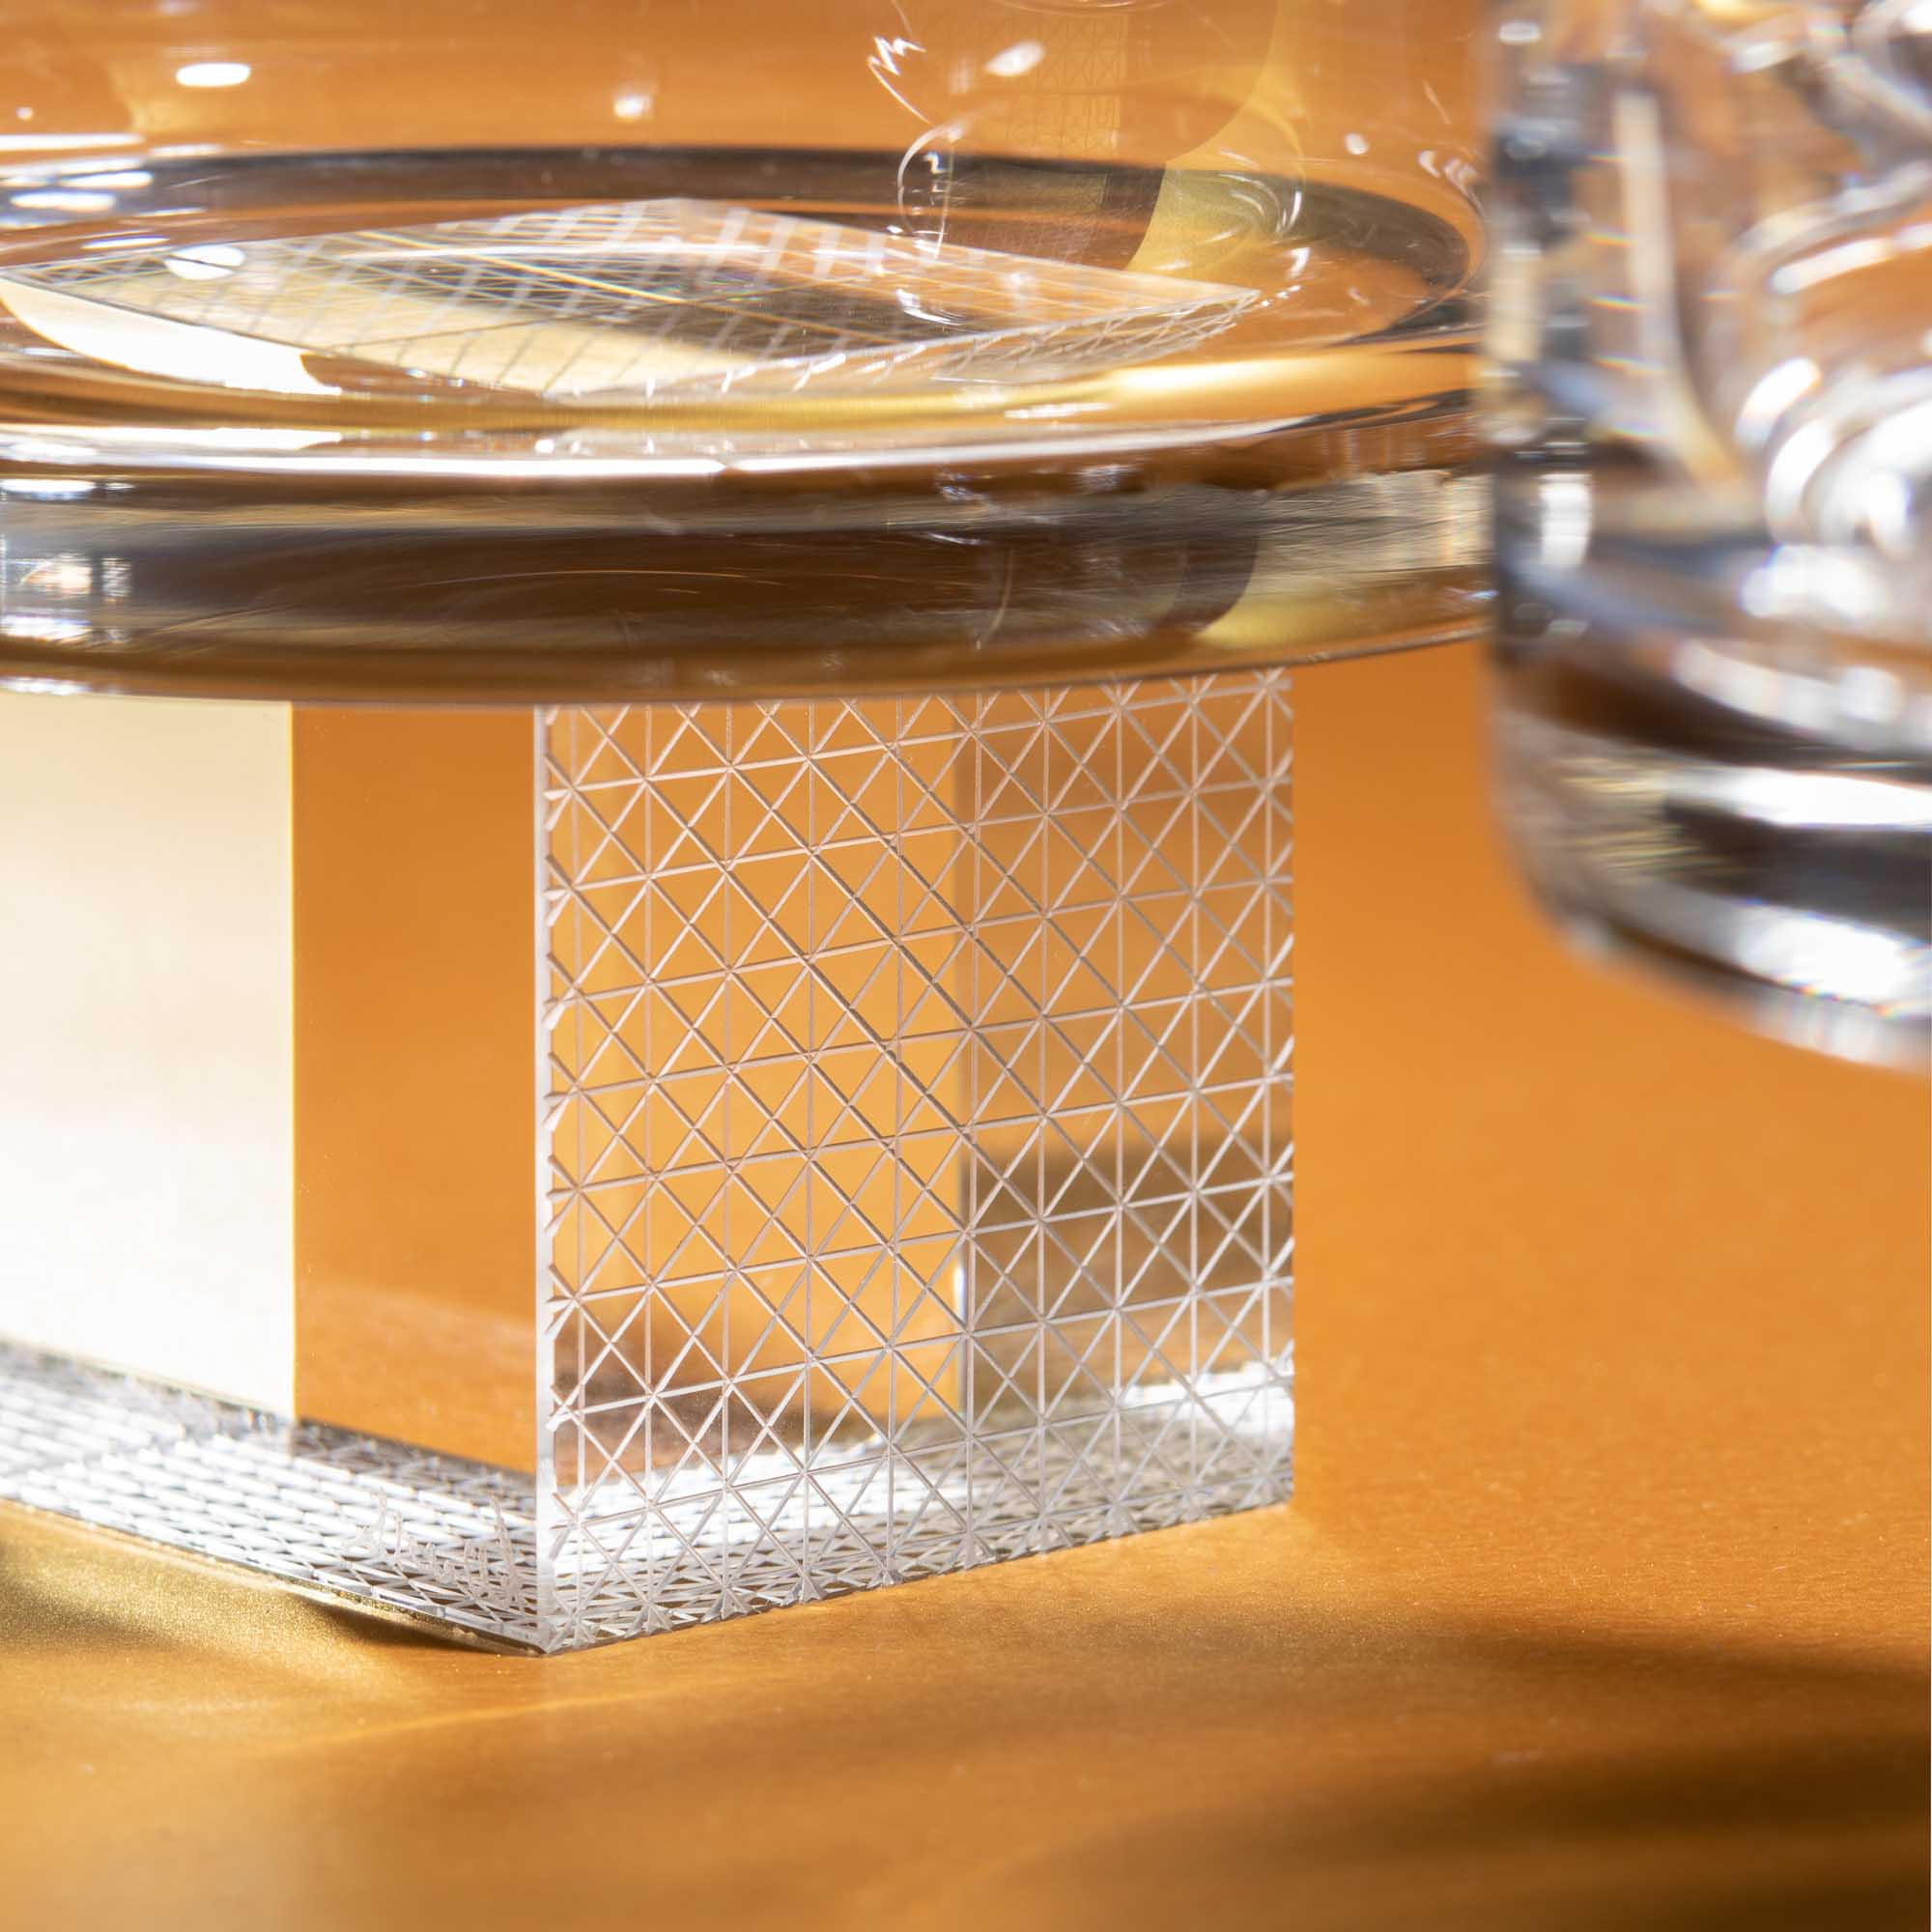 Two transparent crystal glasses for whiskey by Lukas Houdek